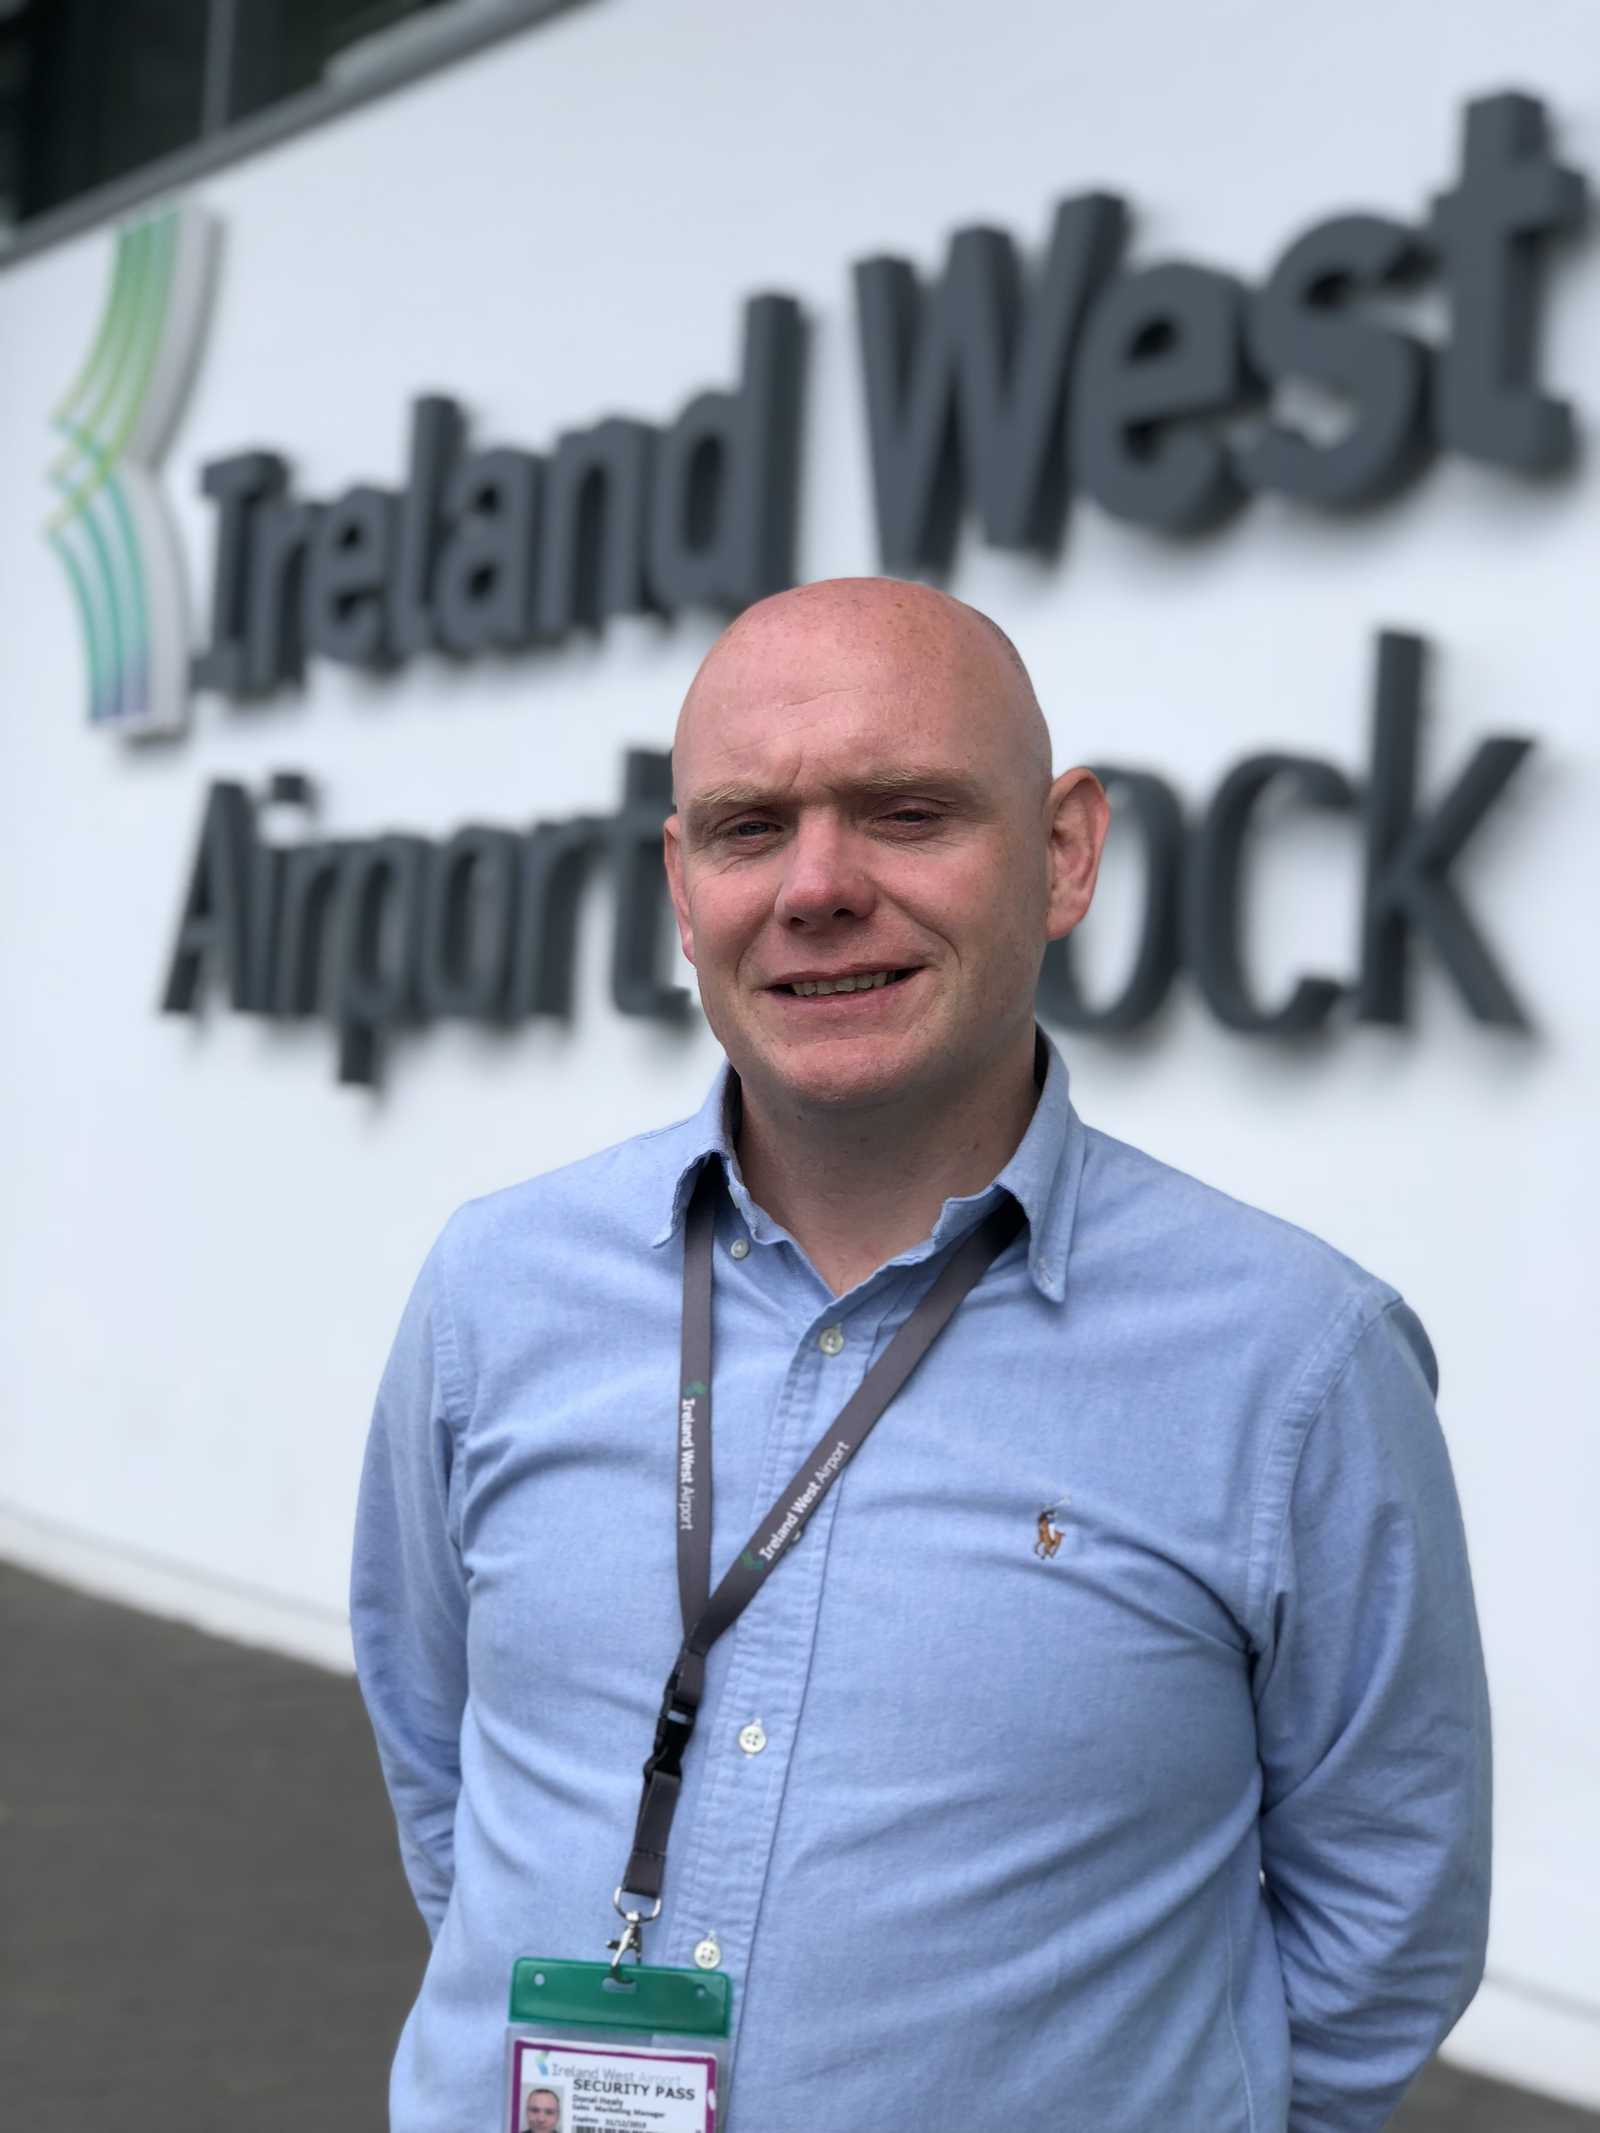 Image - Donal Healy from Ireland West Airport Knock, Co Mayo